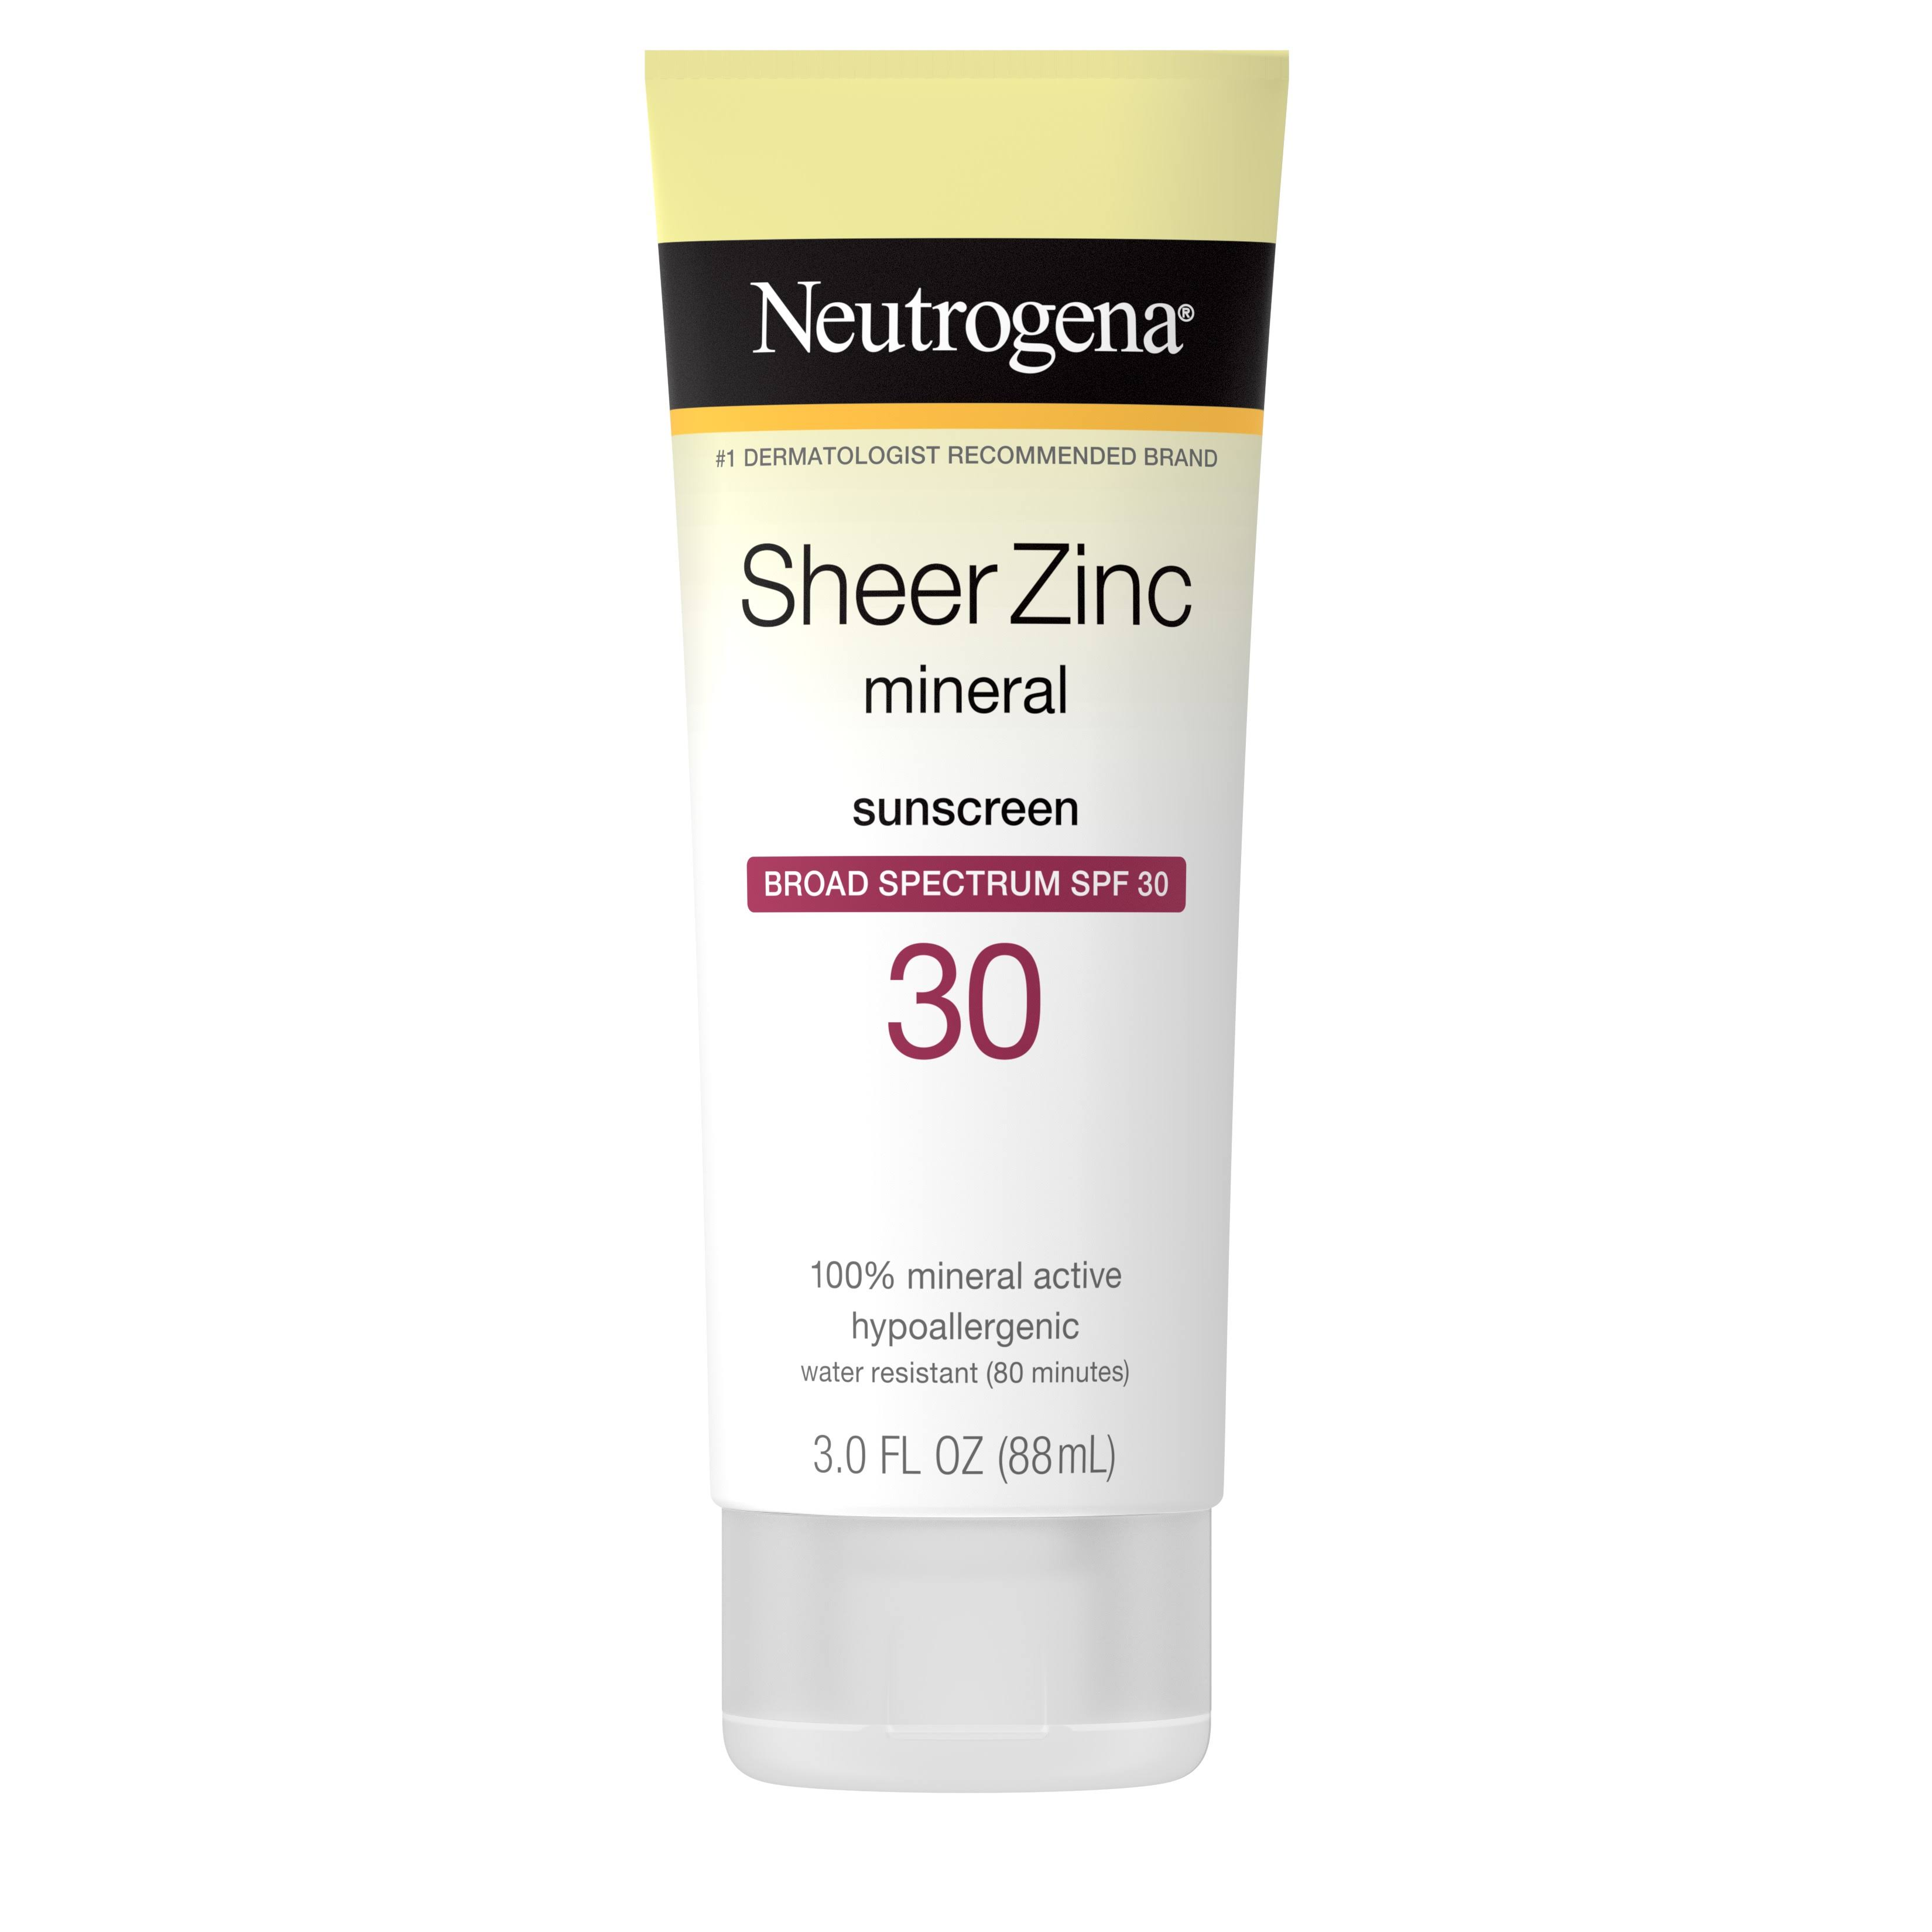 Neutrogena Sheer Zinc Dry Touch Sunscreen - SPF30, 88ml